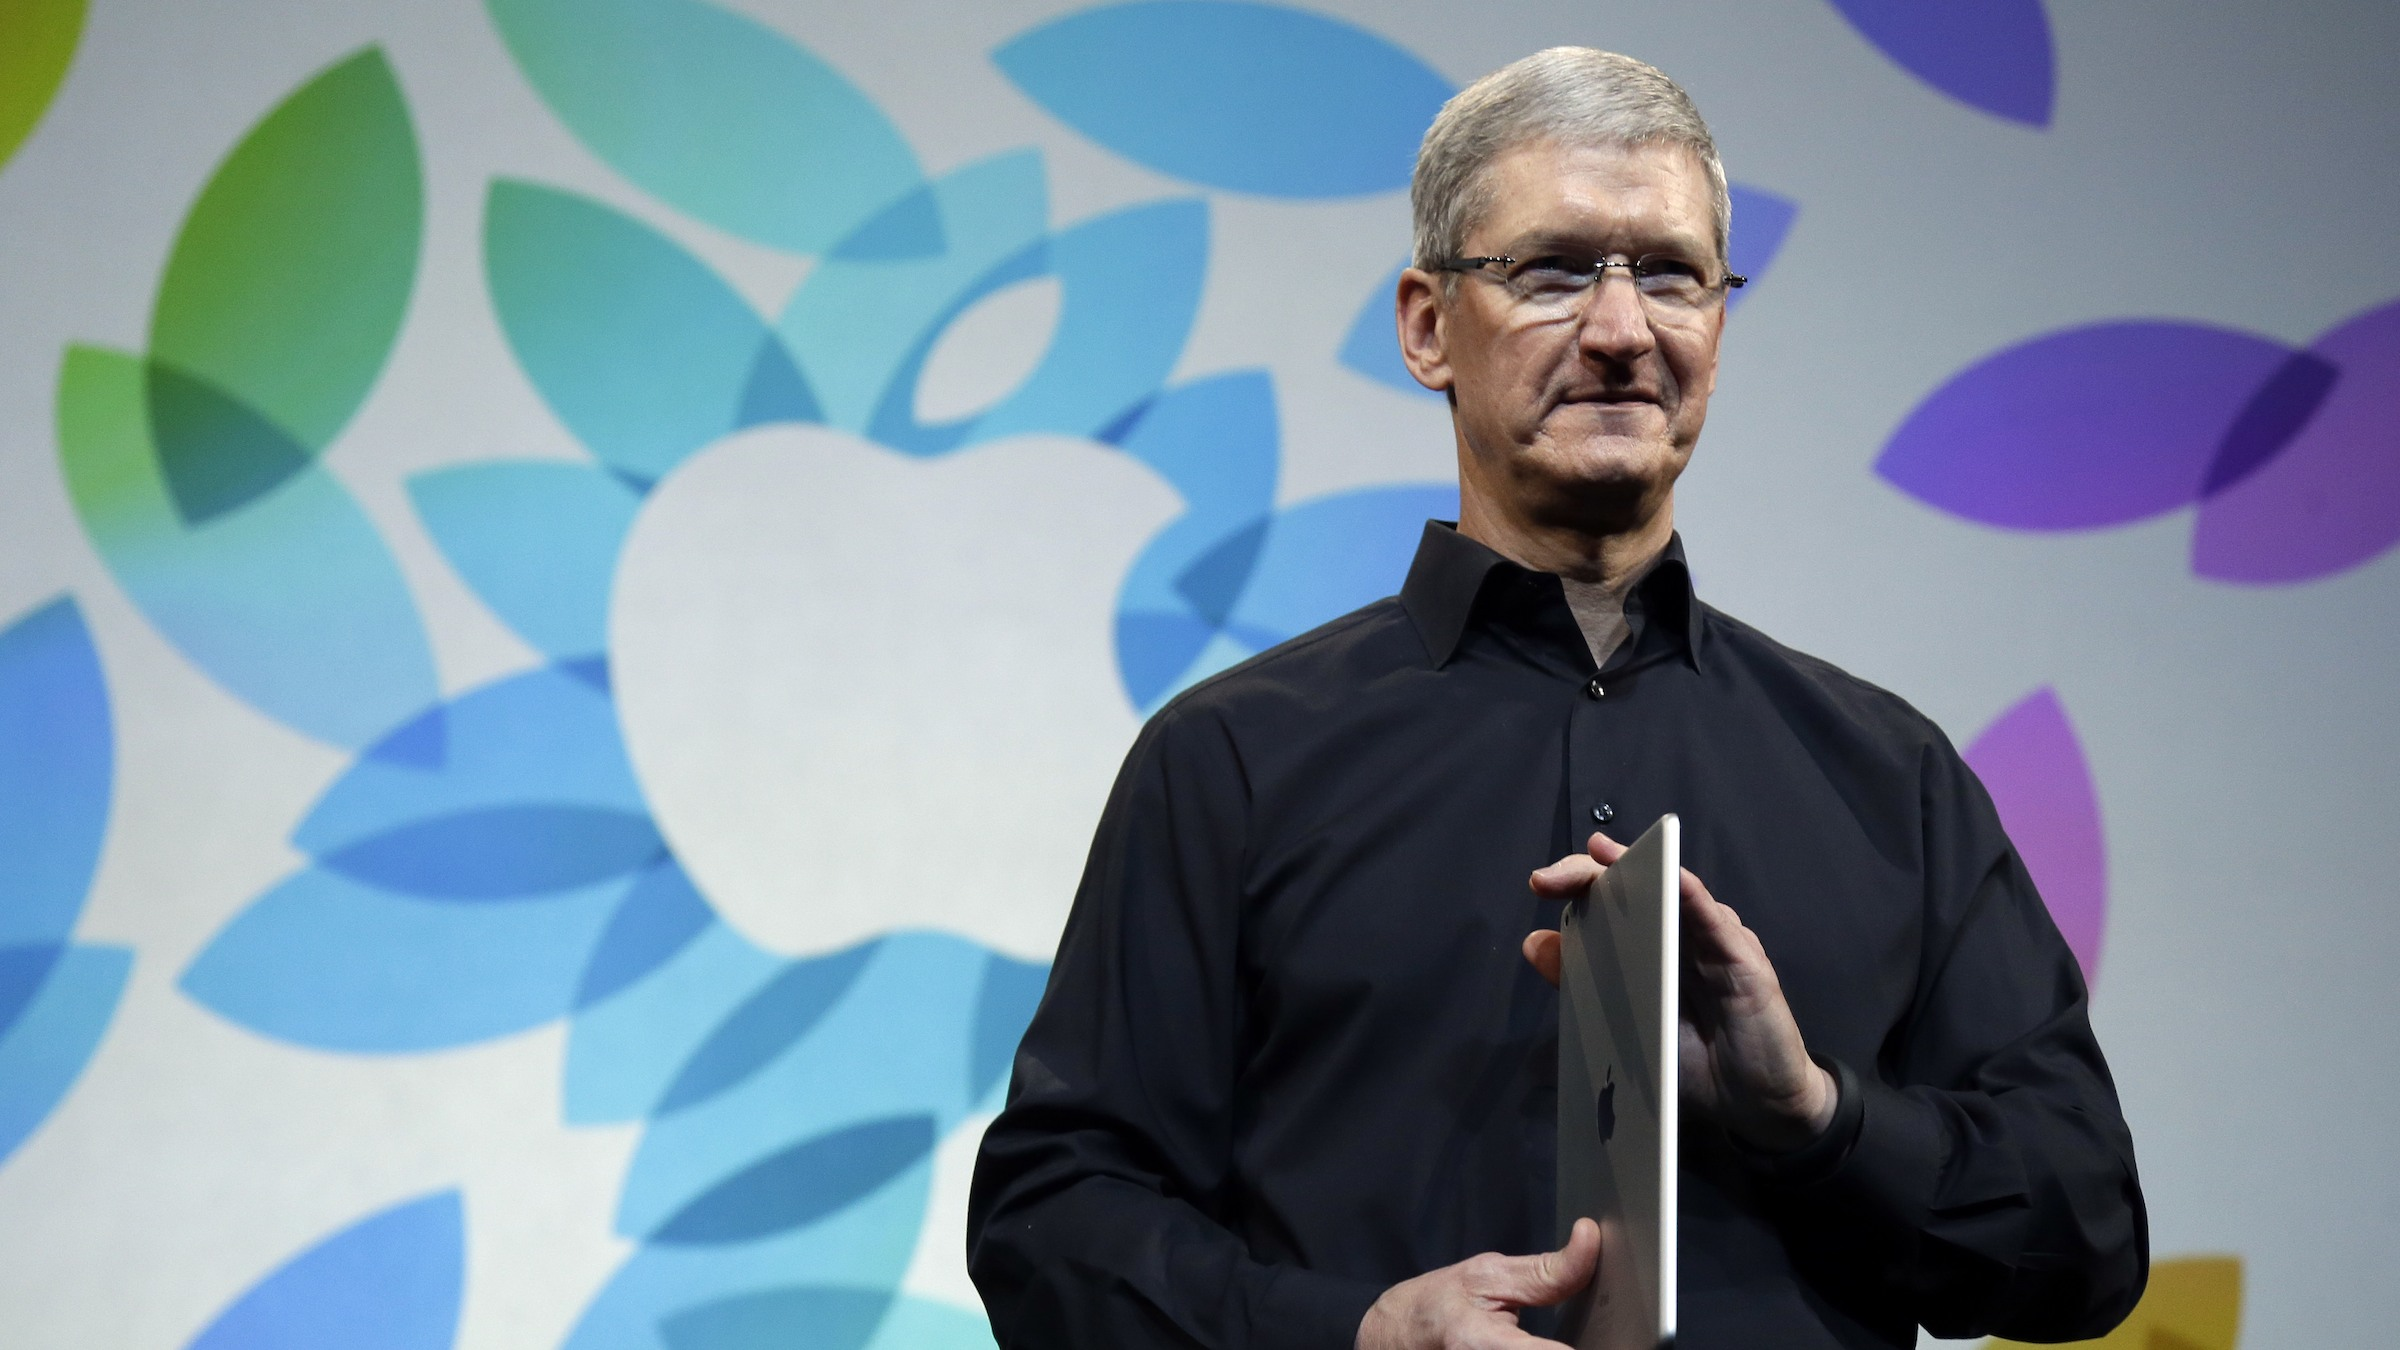 Apple CEO Tim Cook holds an iPad Air